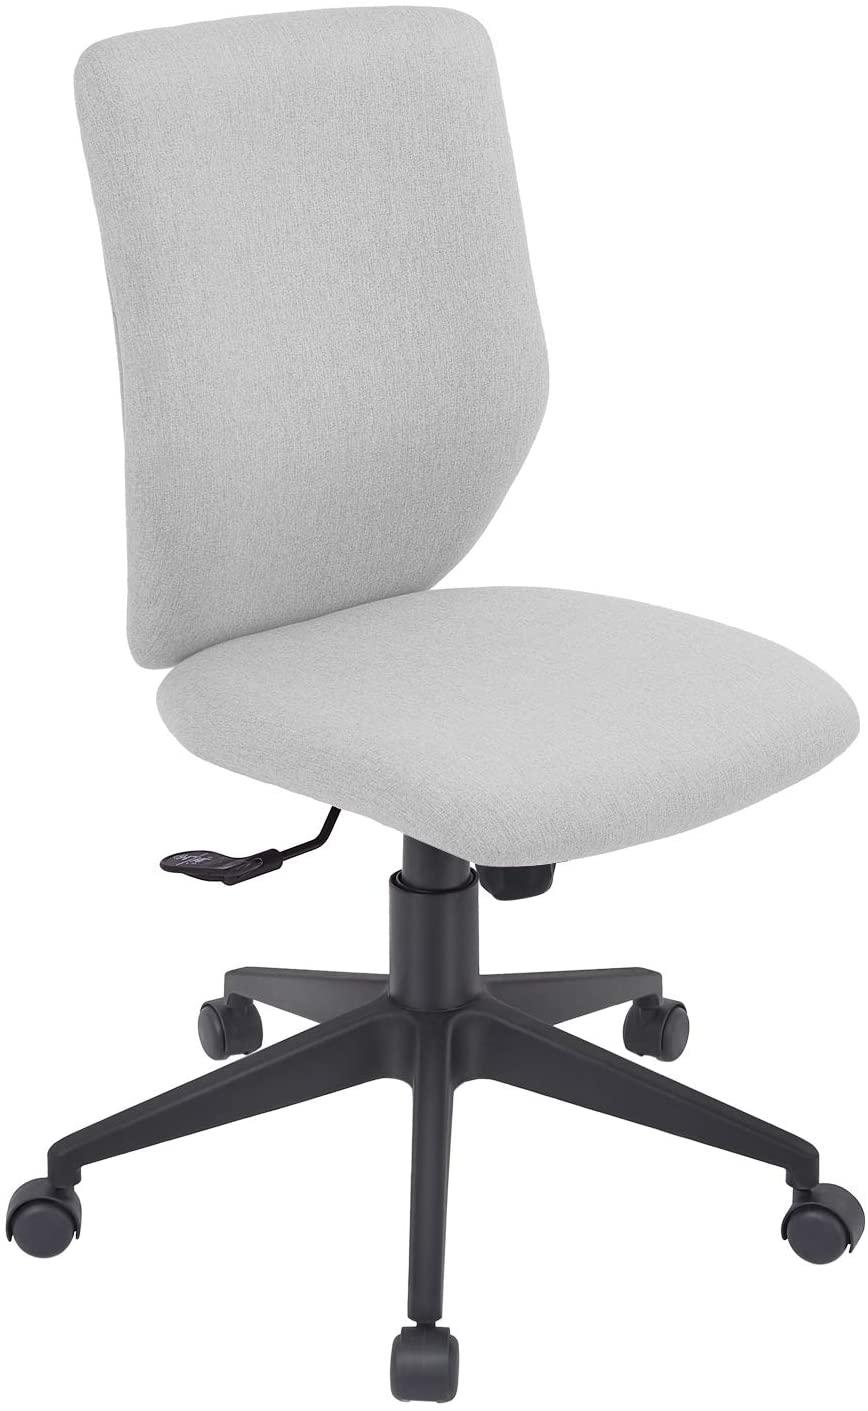 Bowthy Ergonomic Armless Office Chair (Photo via Amazon)